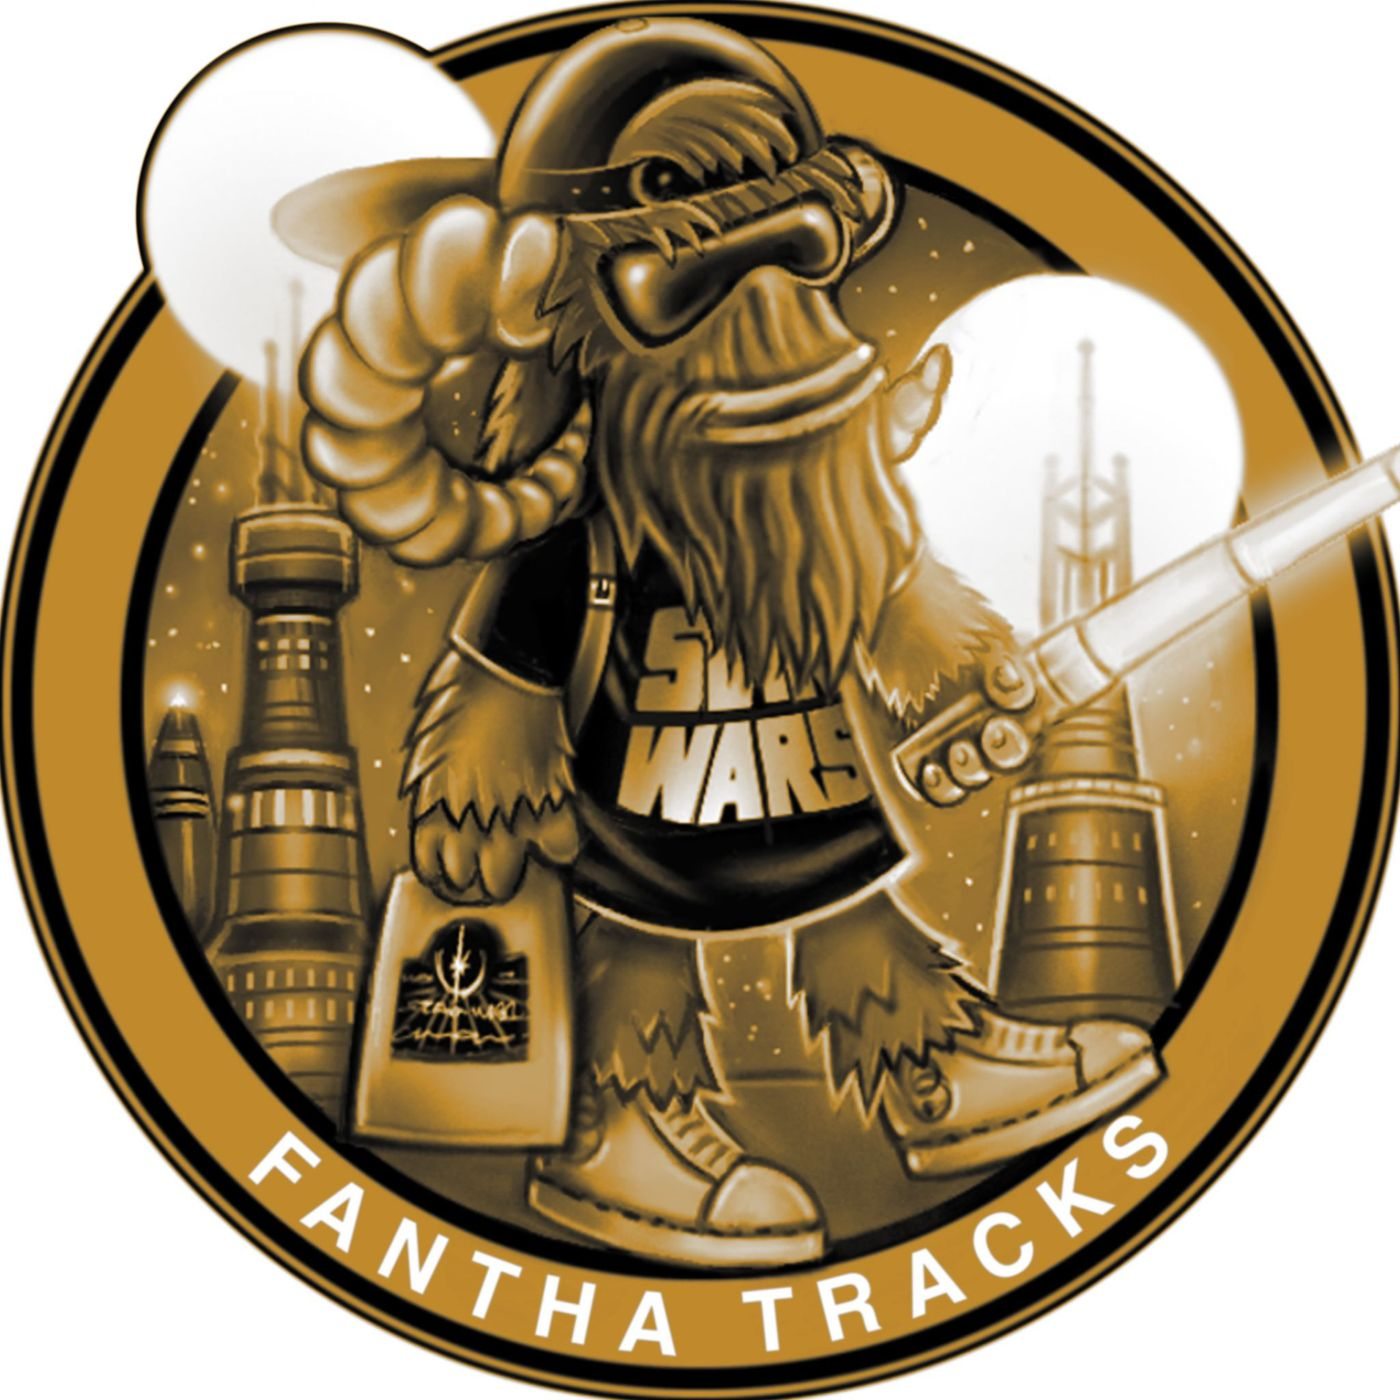 Fantha Tracks Radio: A Star Wars Podcast